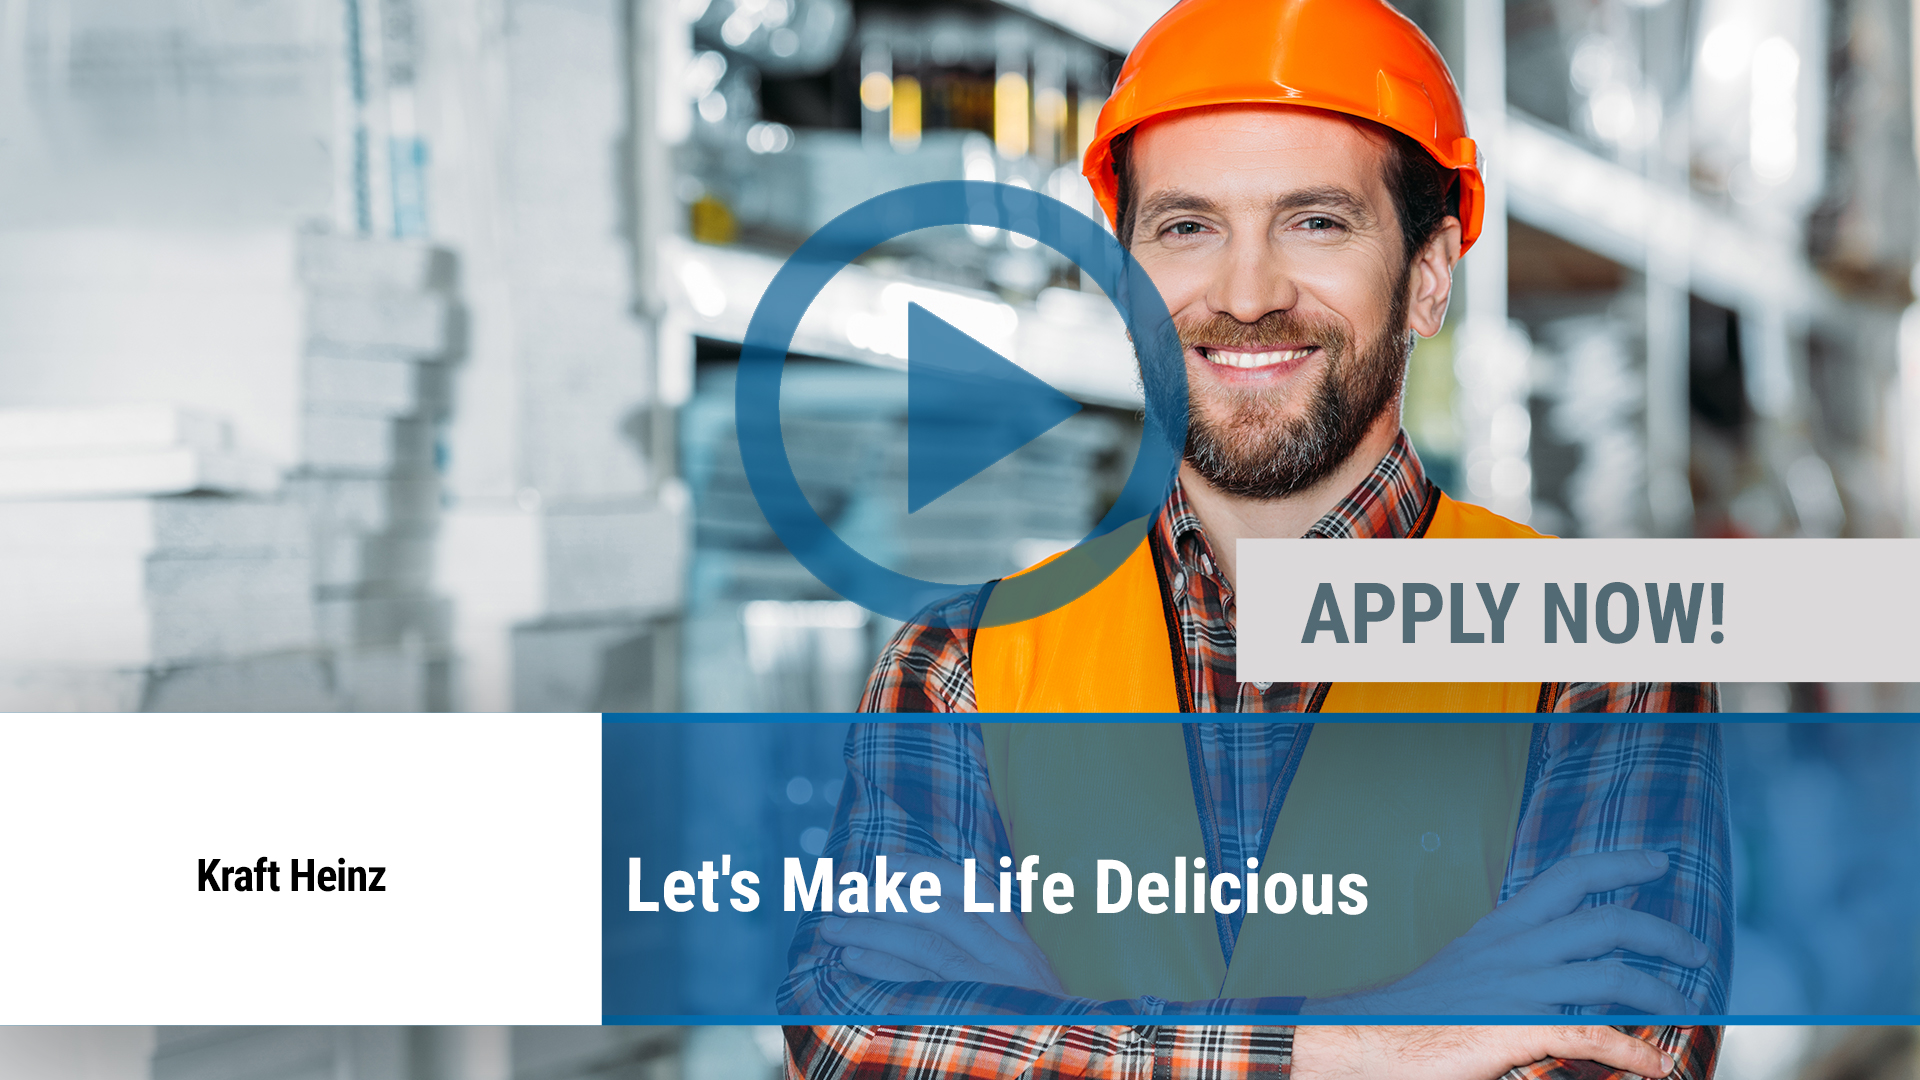 Watch our careers video for available job opening Let's Make Life Delicious in Garland, TX